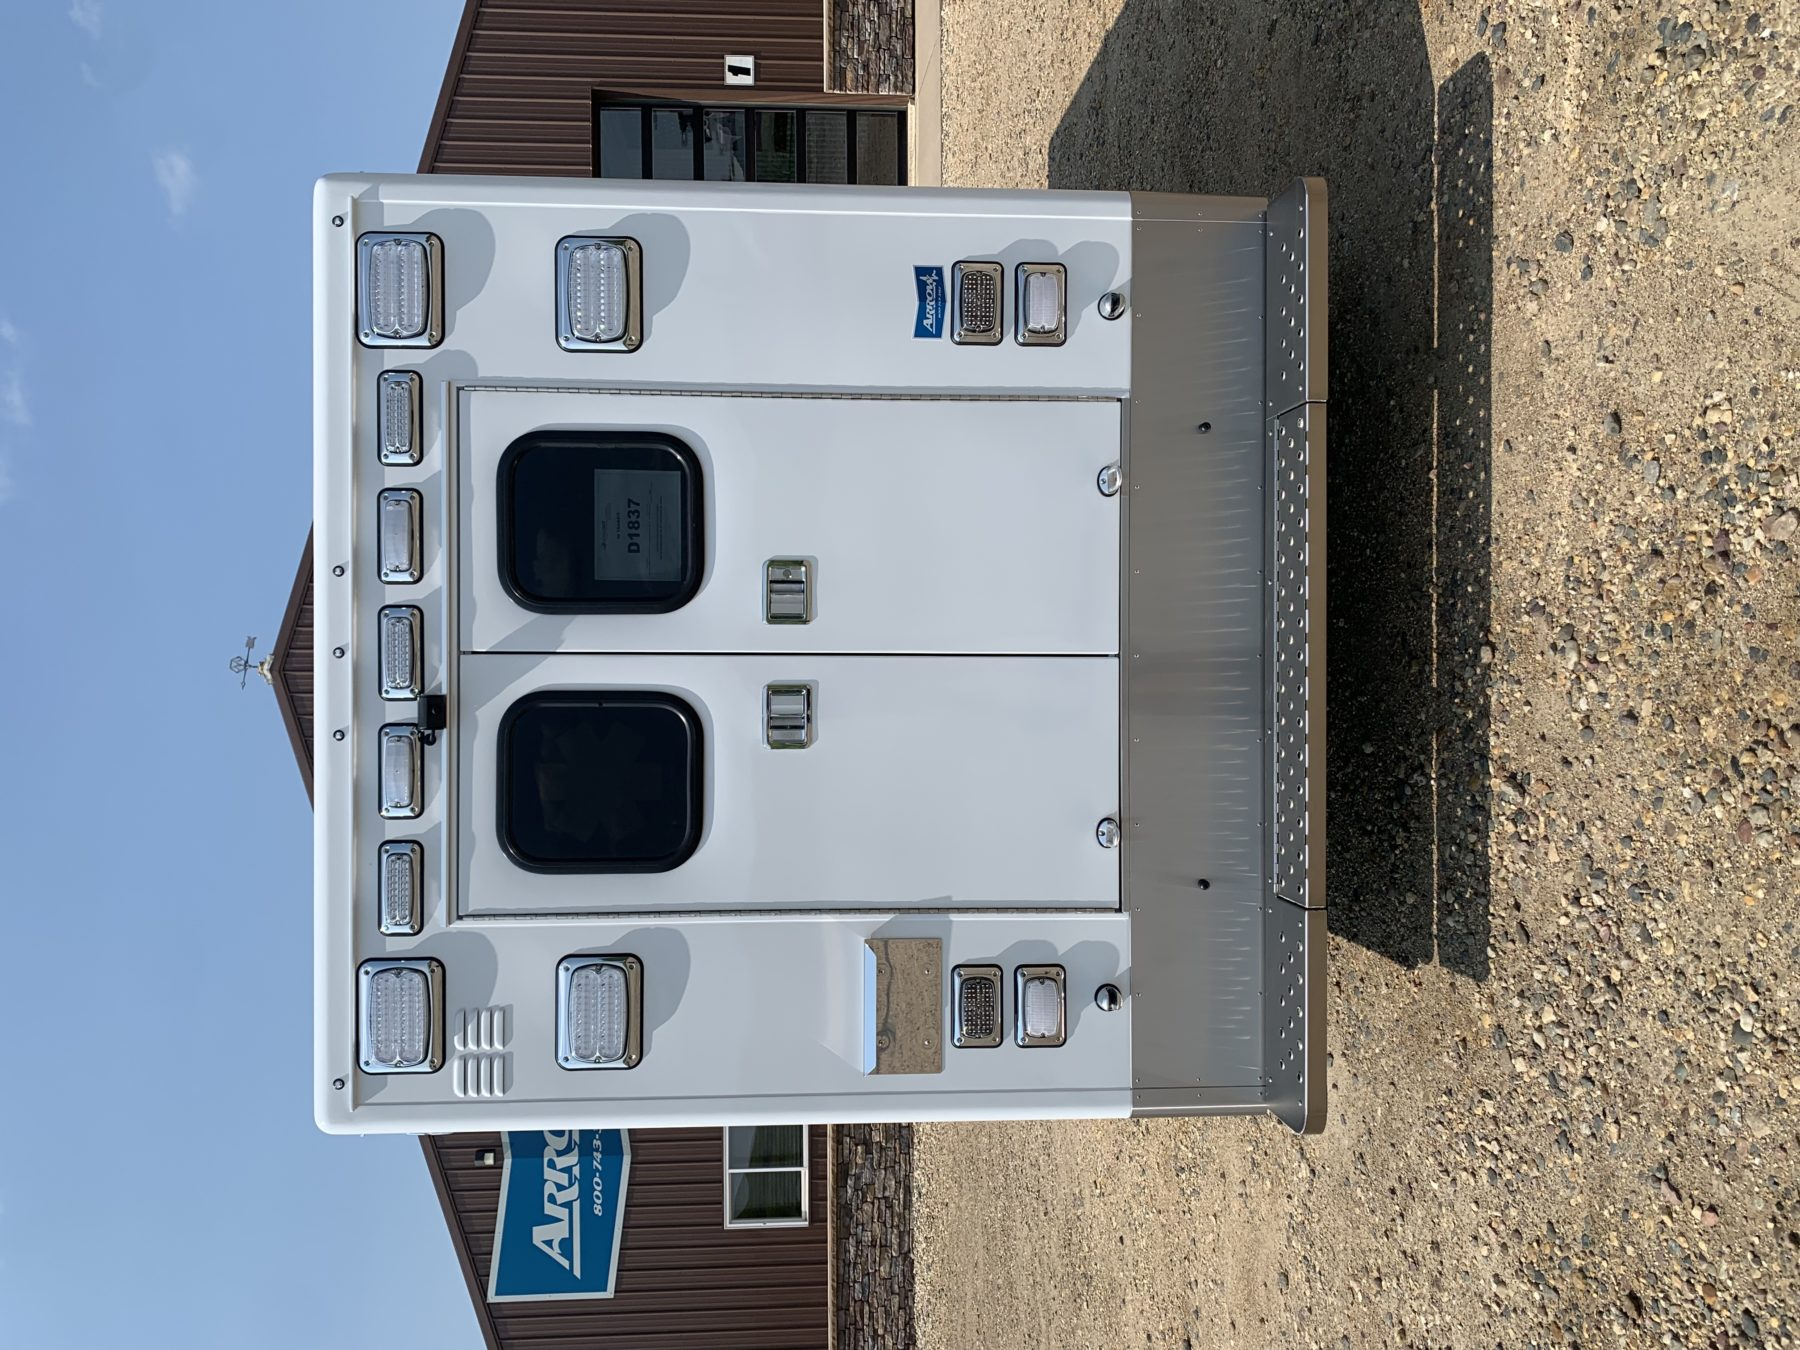 2021 Ford F550 4x4 Heavy Duty Ambulance For Sale – Picture 12